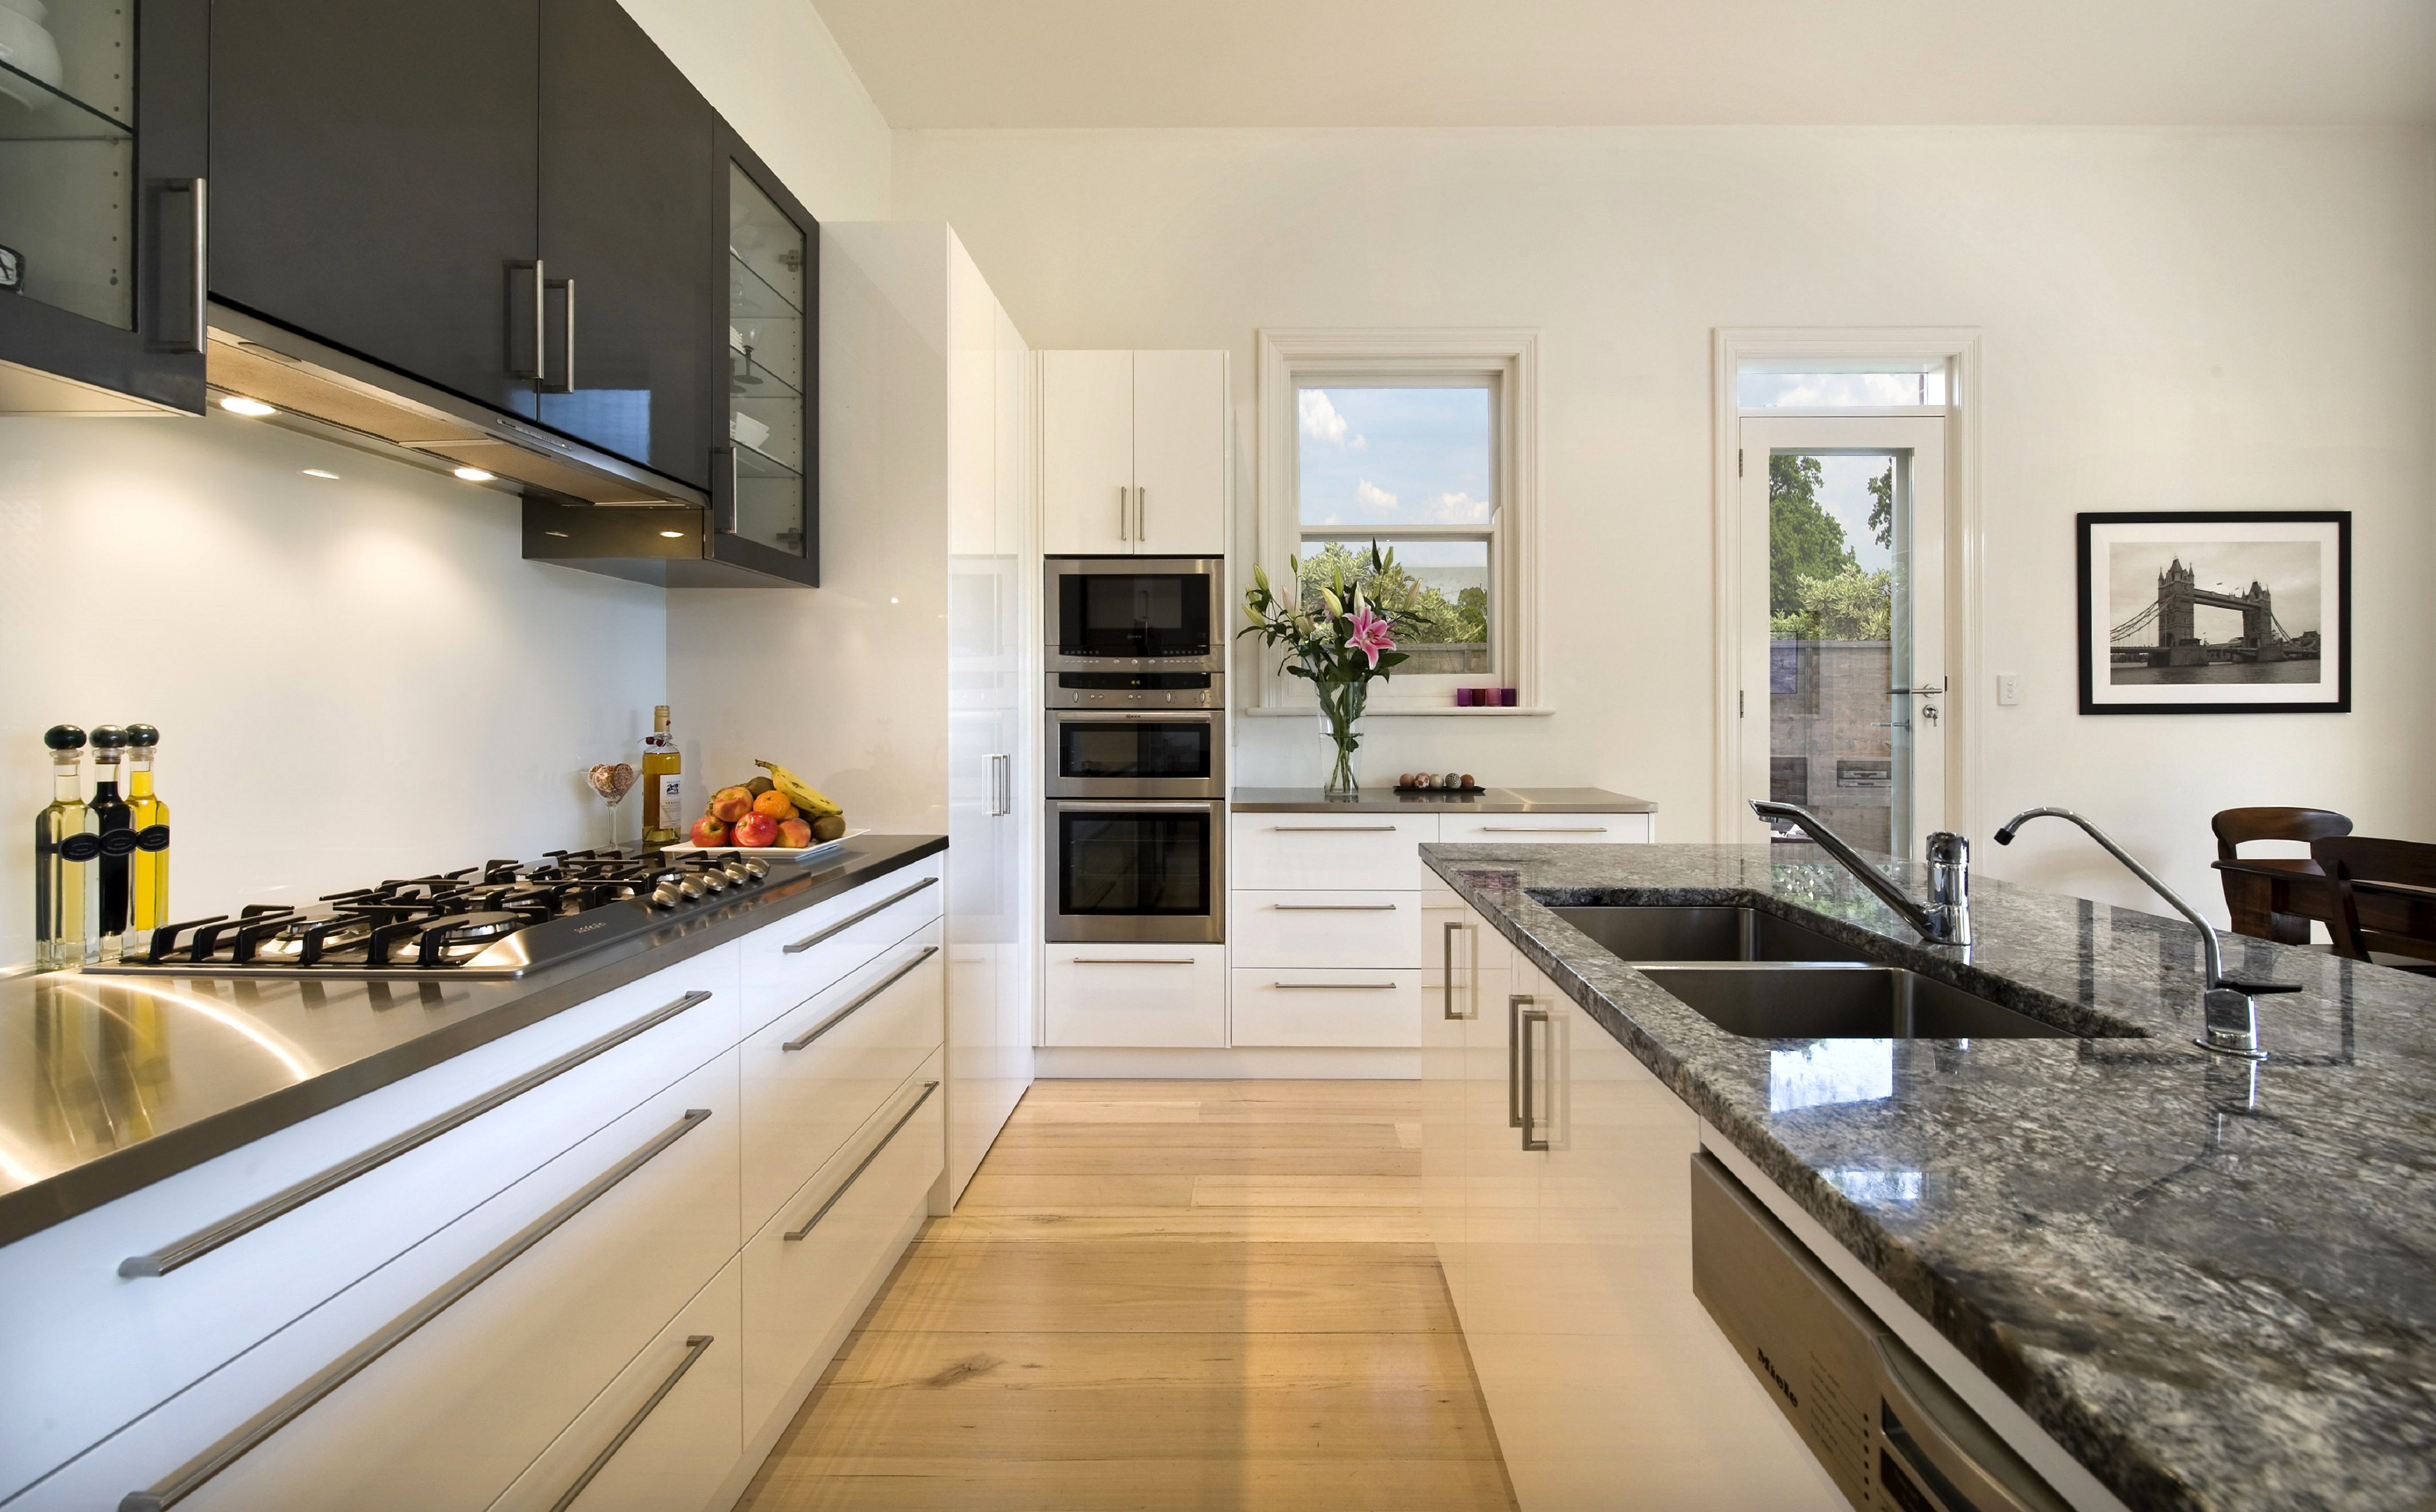 Looking for a new kitchen or simply